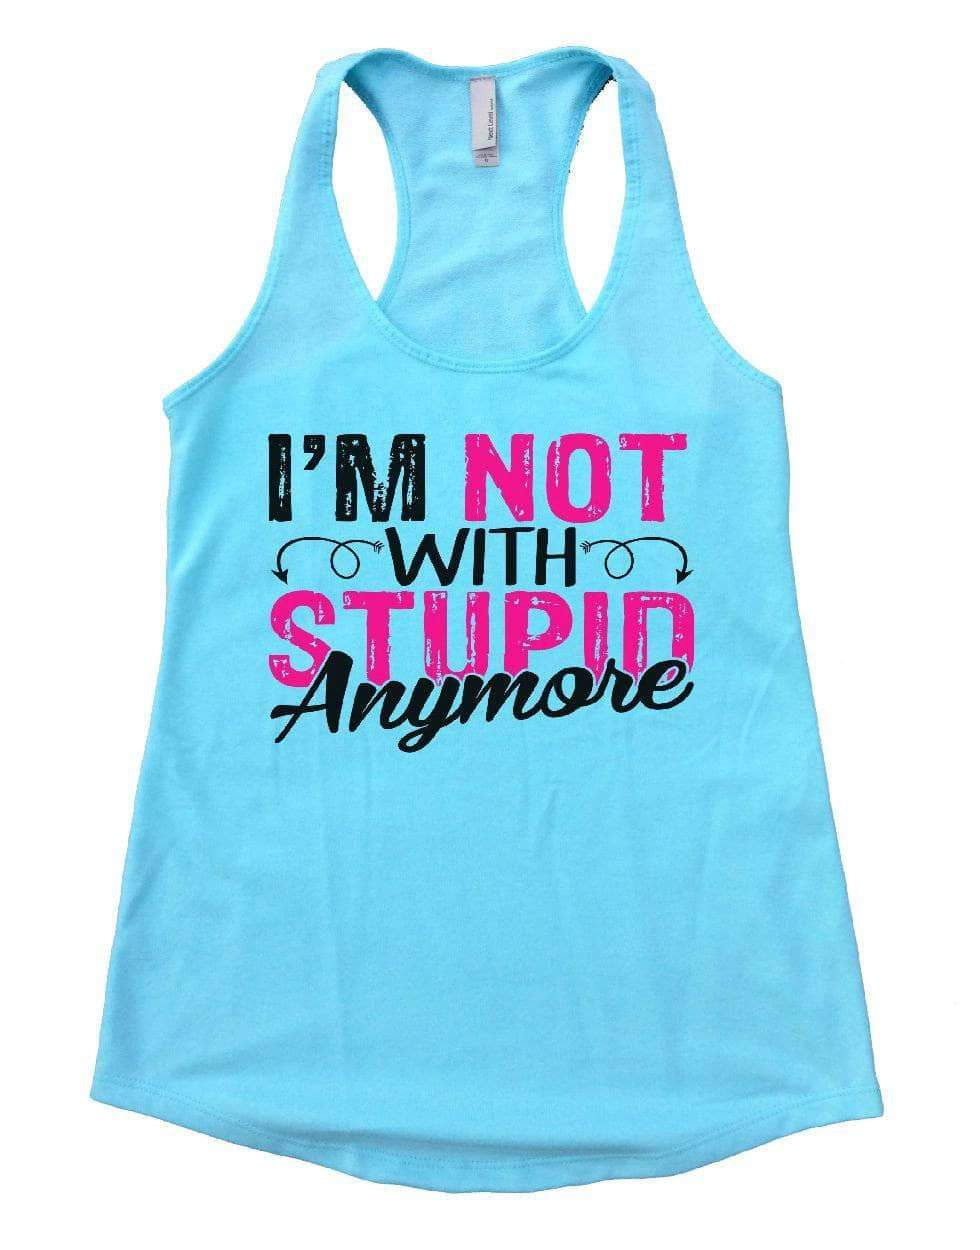 I'M NOT WITH STUPIN Anymore Womens Workout Tank Top Small Womens Tank Tops Cancun Blue